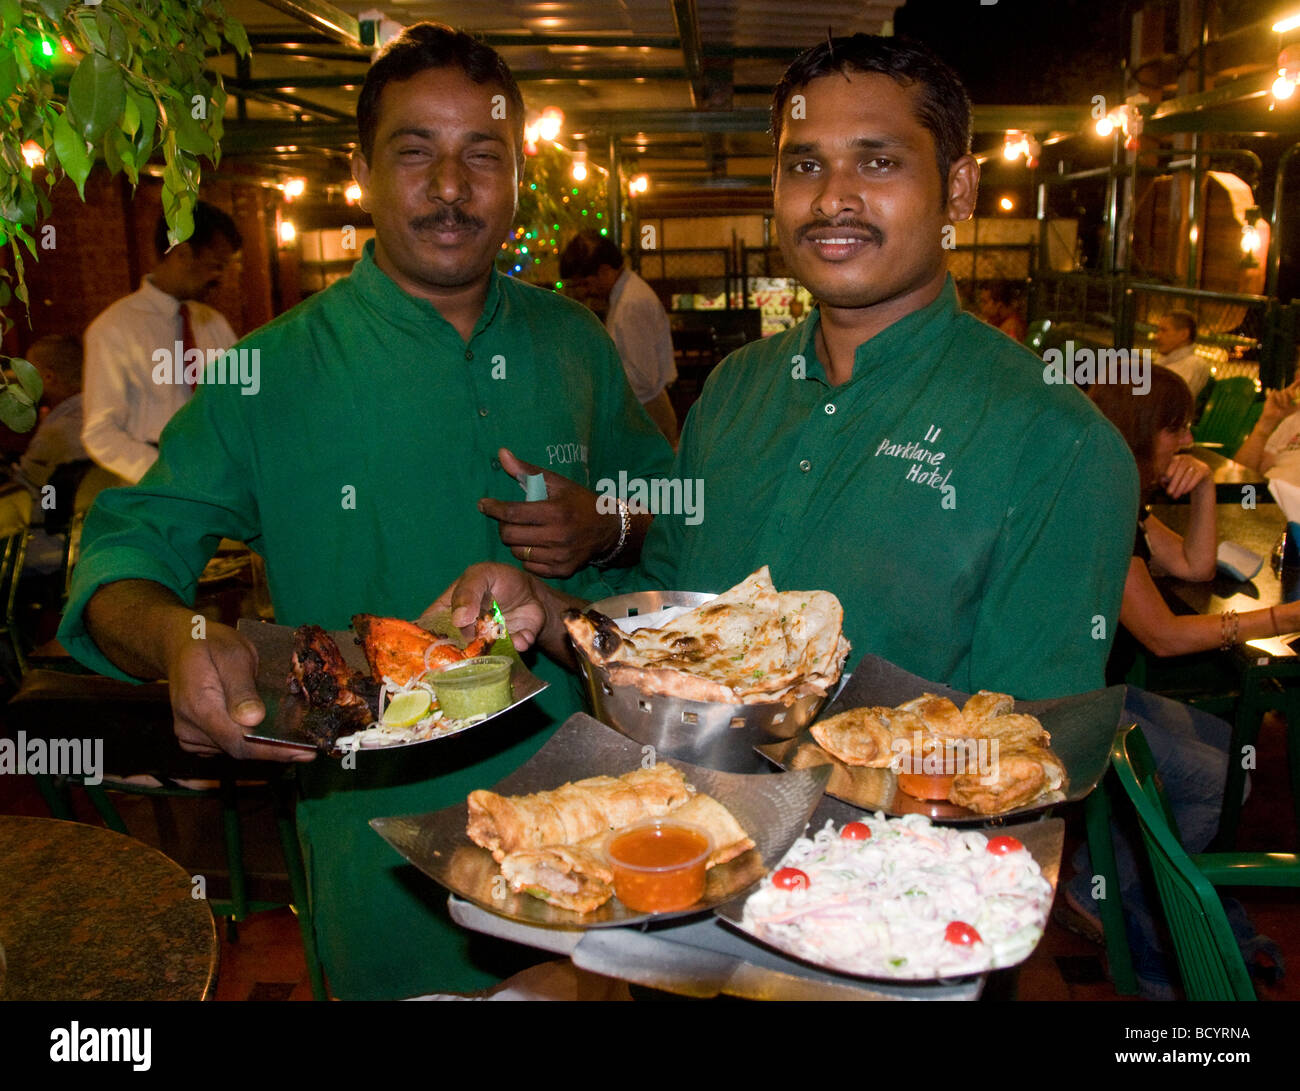 Indian waiters in a restaurant in South India - Stock Image